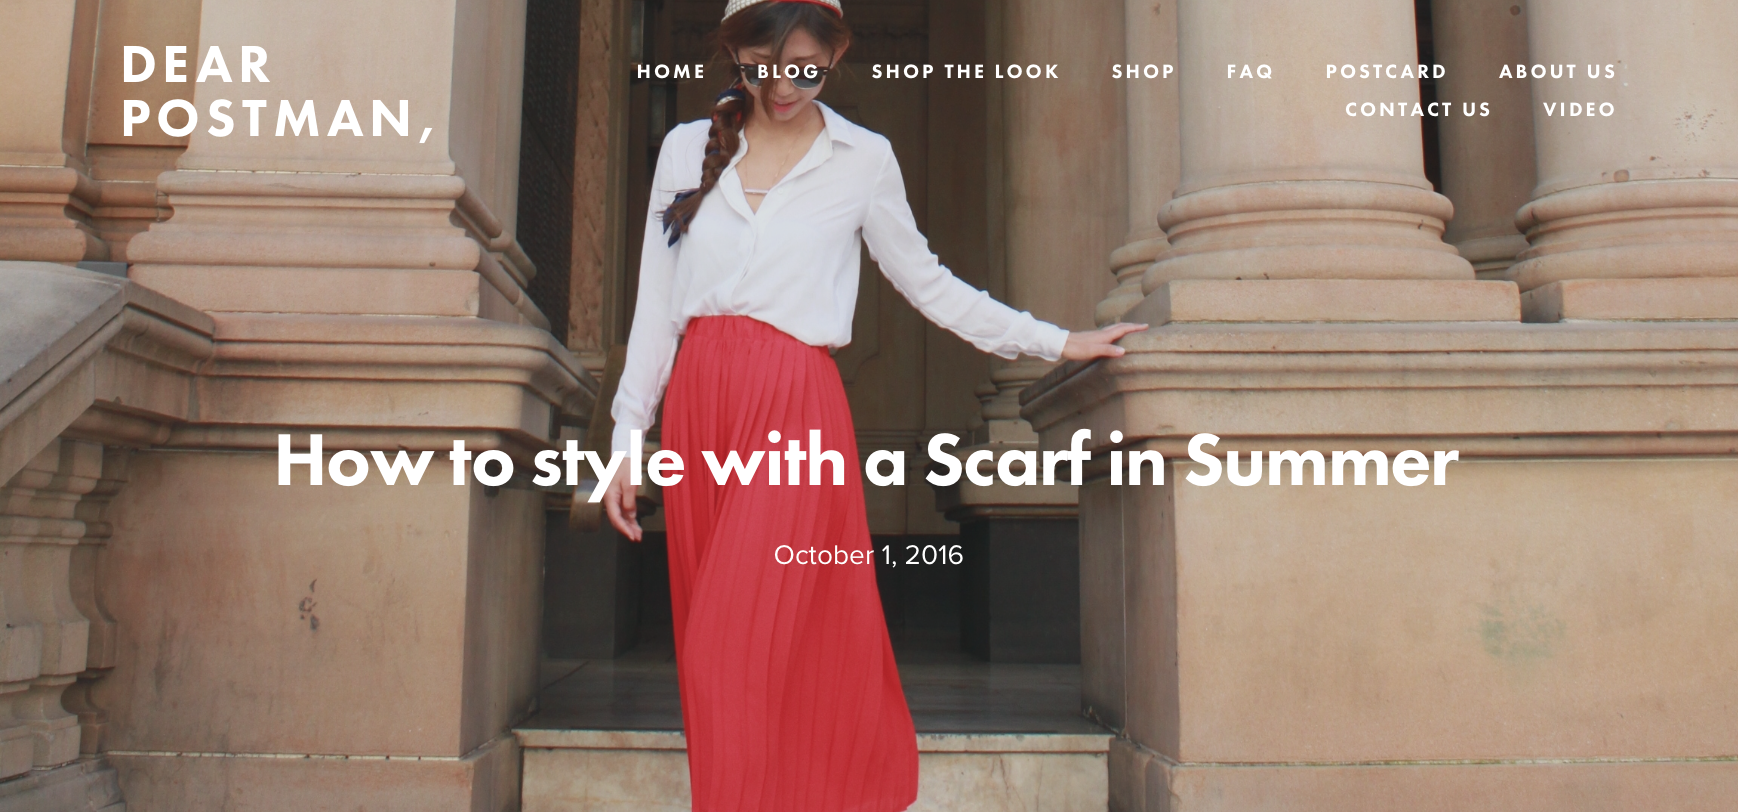 How to Style with a Scarf in Summer